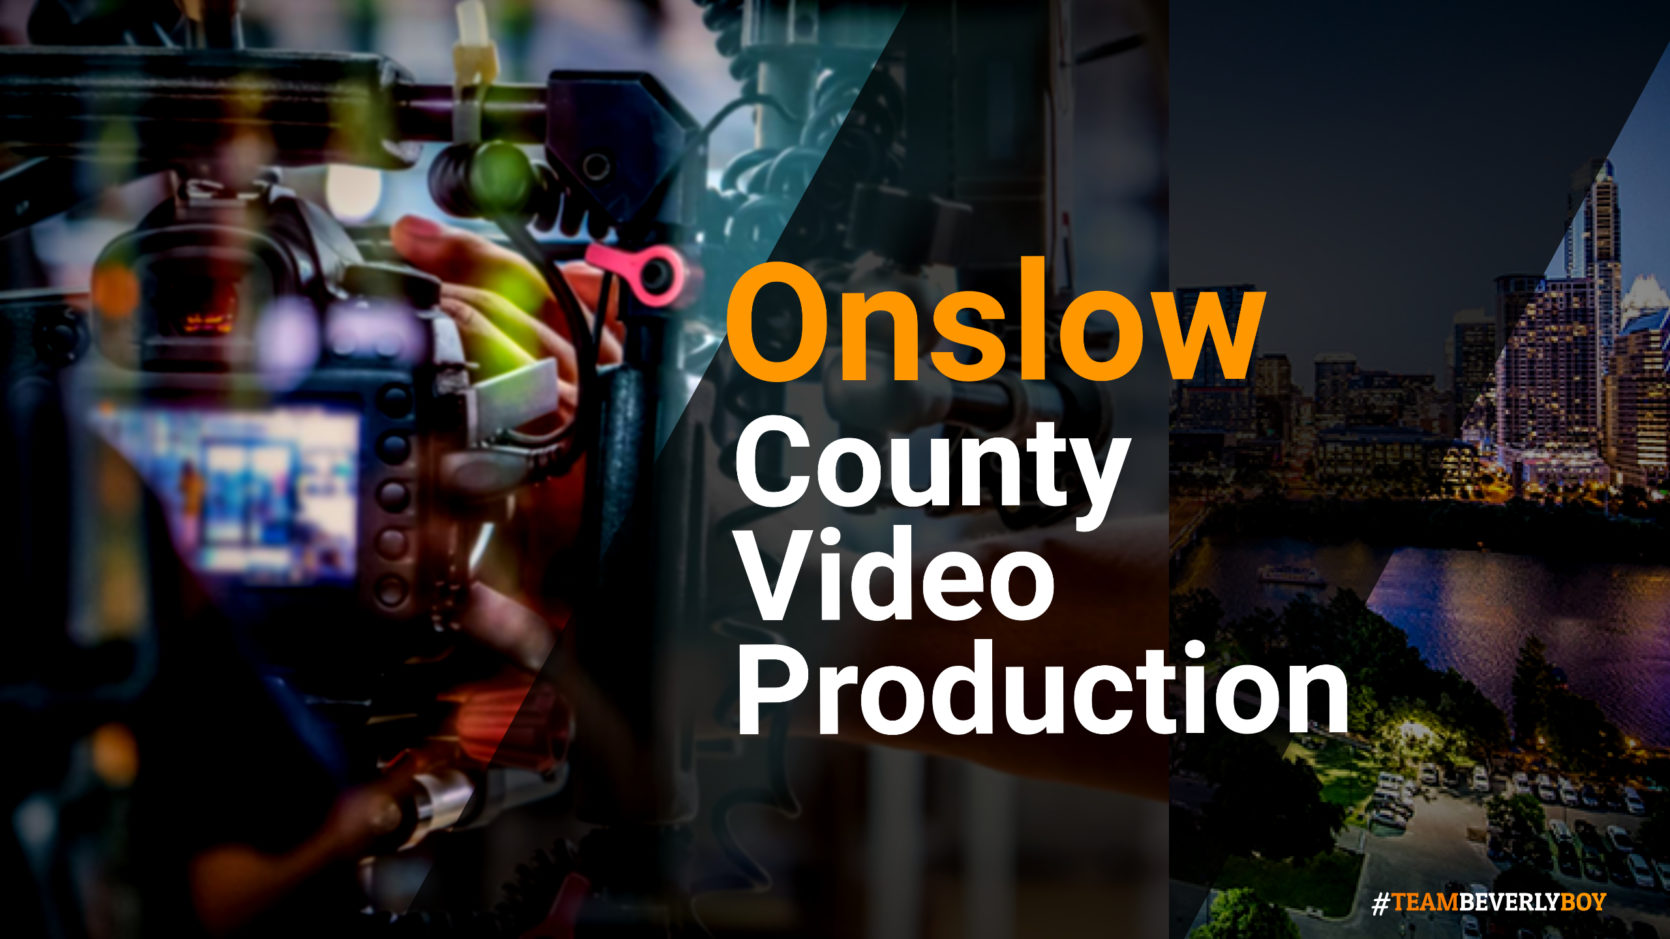 Onslow County Video Production